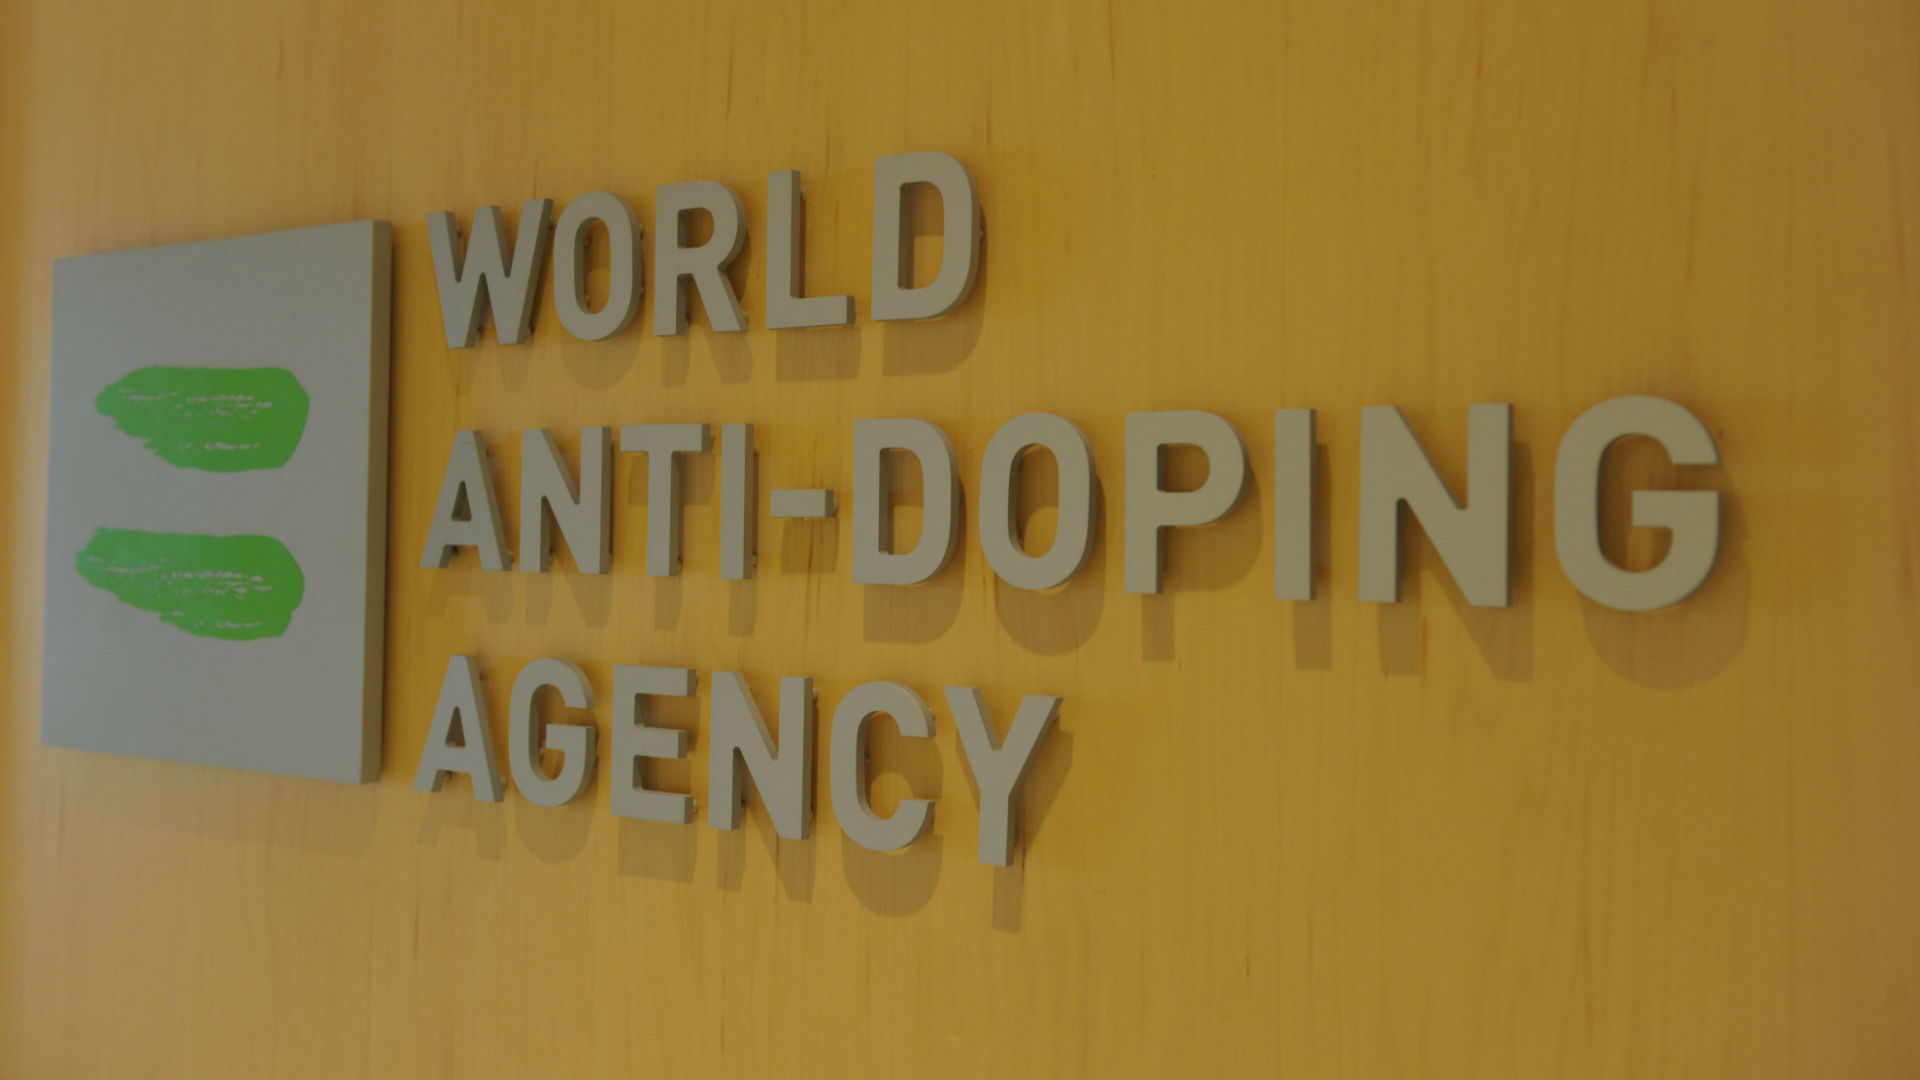 Microsoft: Russia-linked hacking group targeted sports organizations, anti-doping agencies